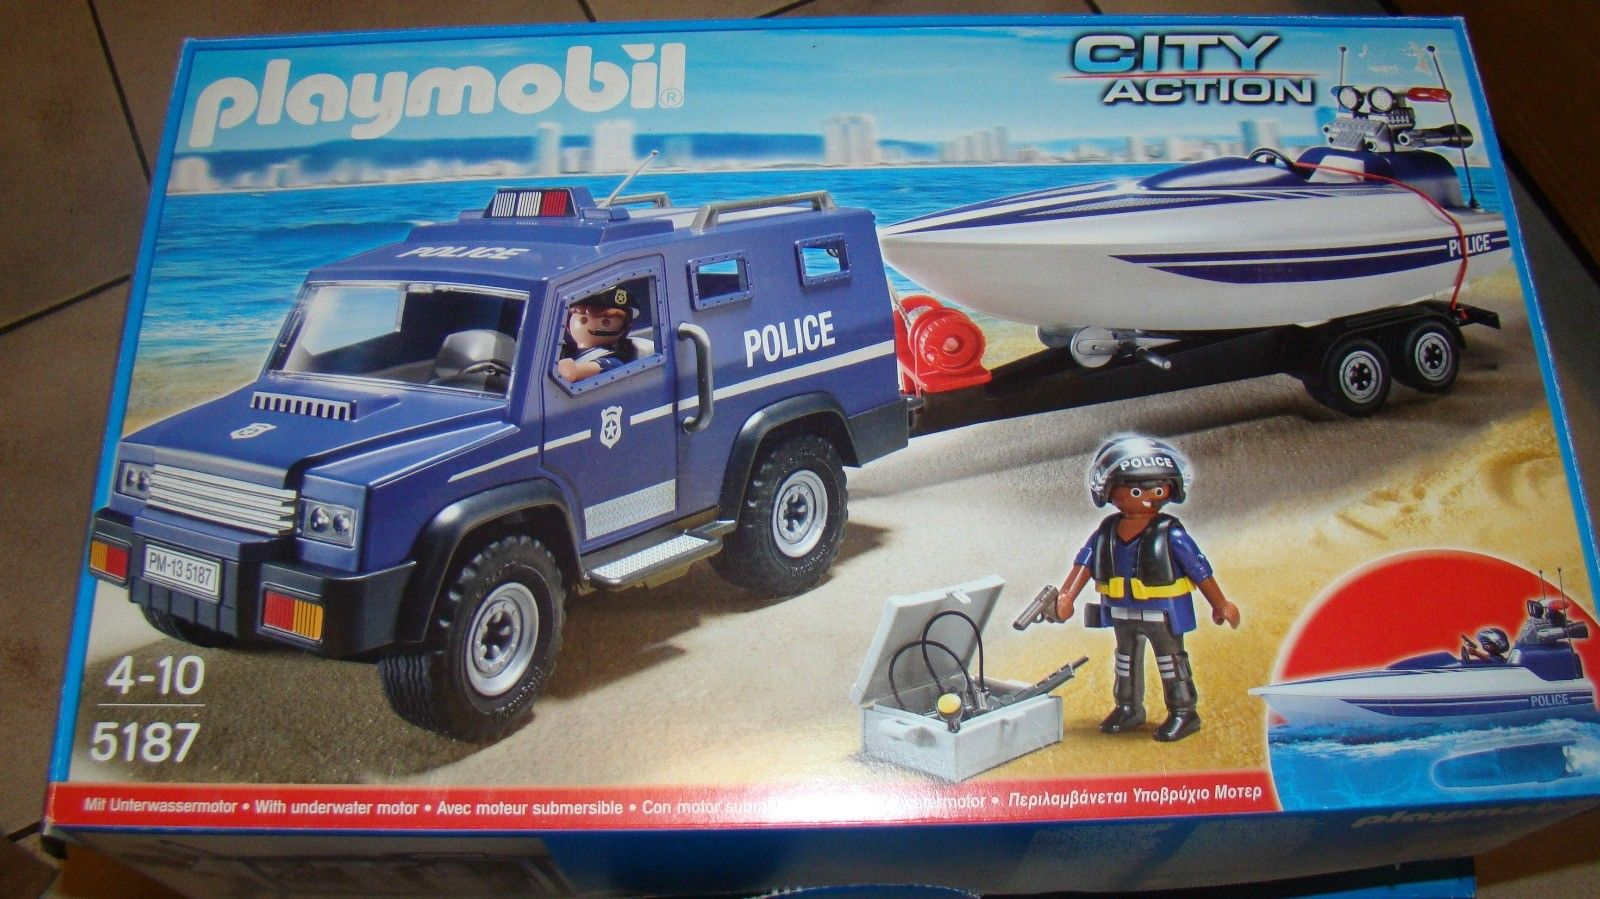 Playmobil 5187 city action fourgon et vedette de police